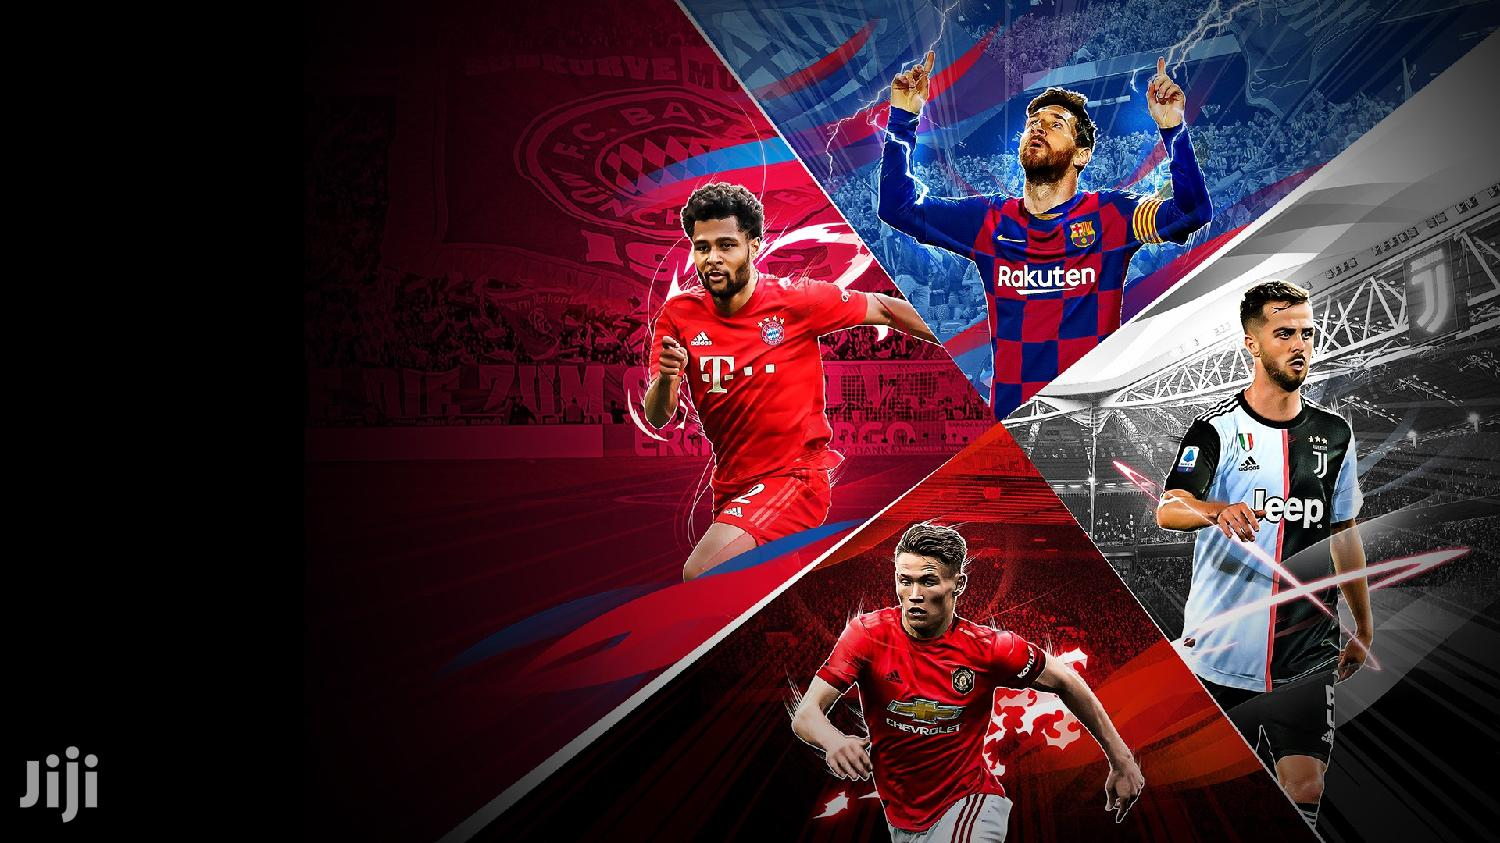 PES 2020 For Pc